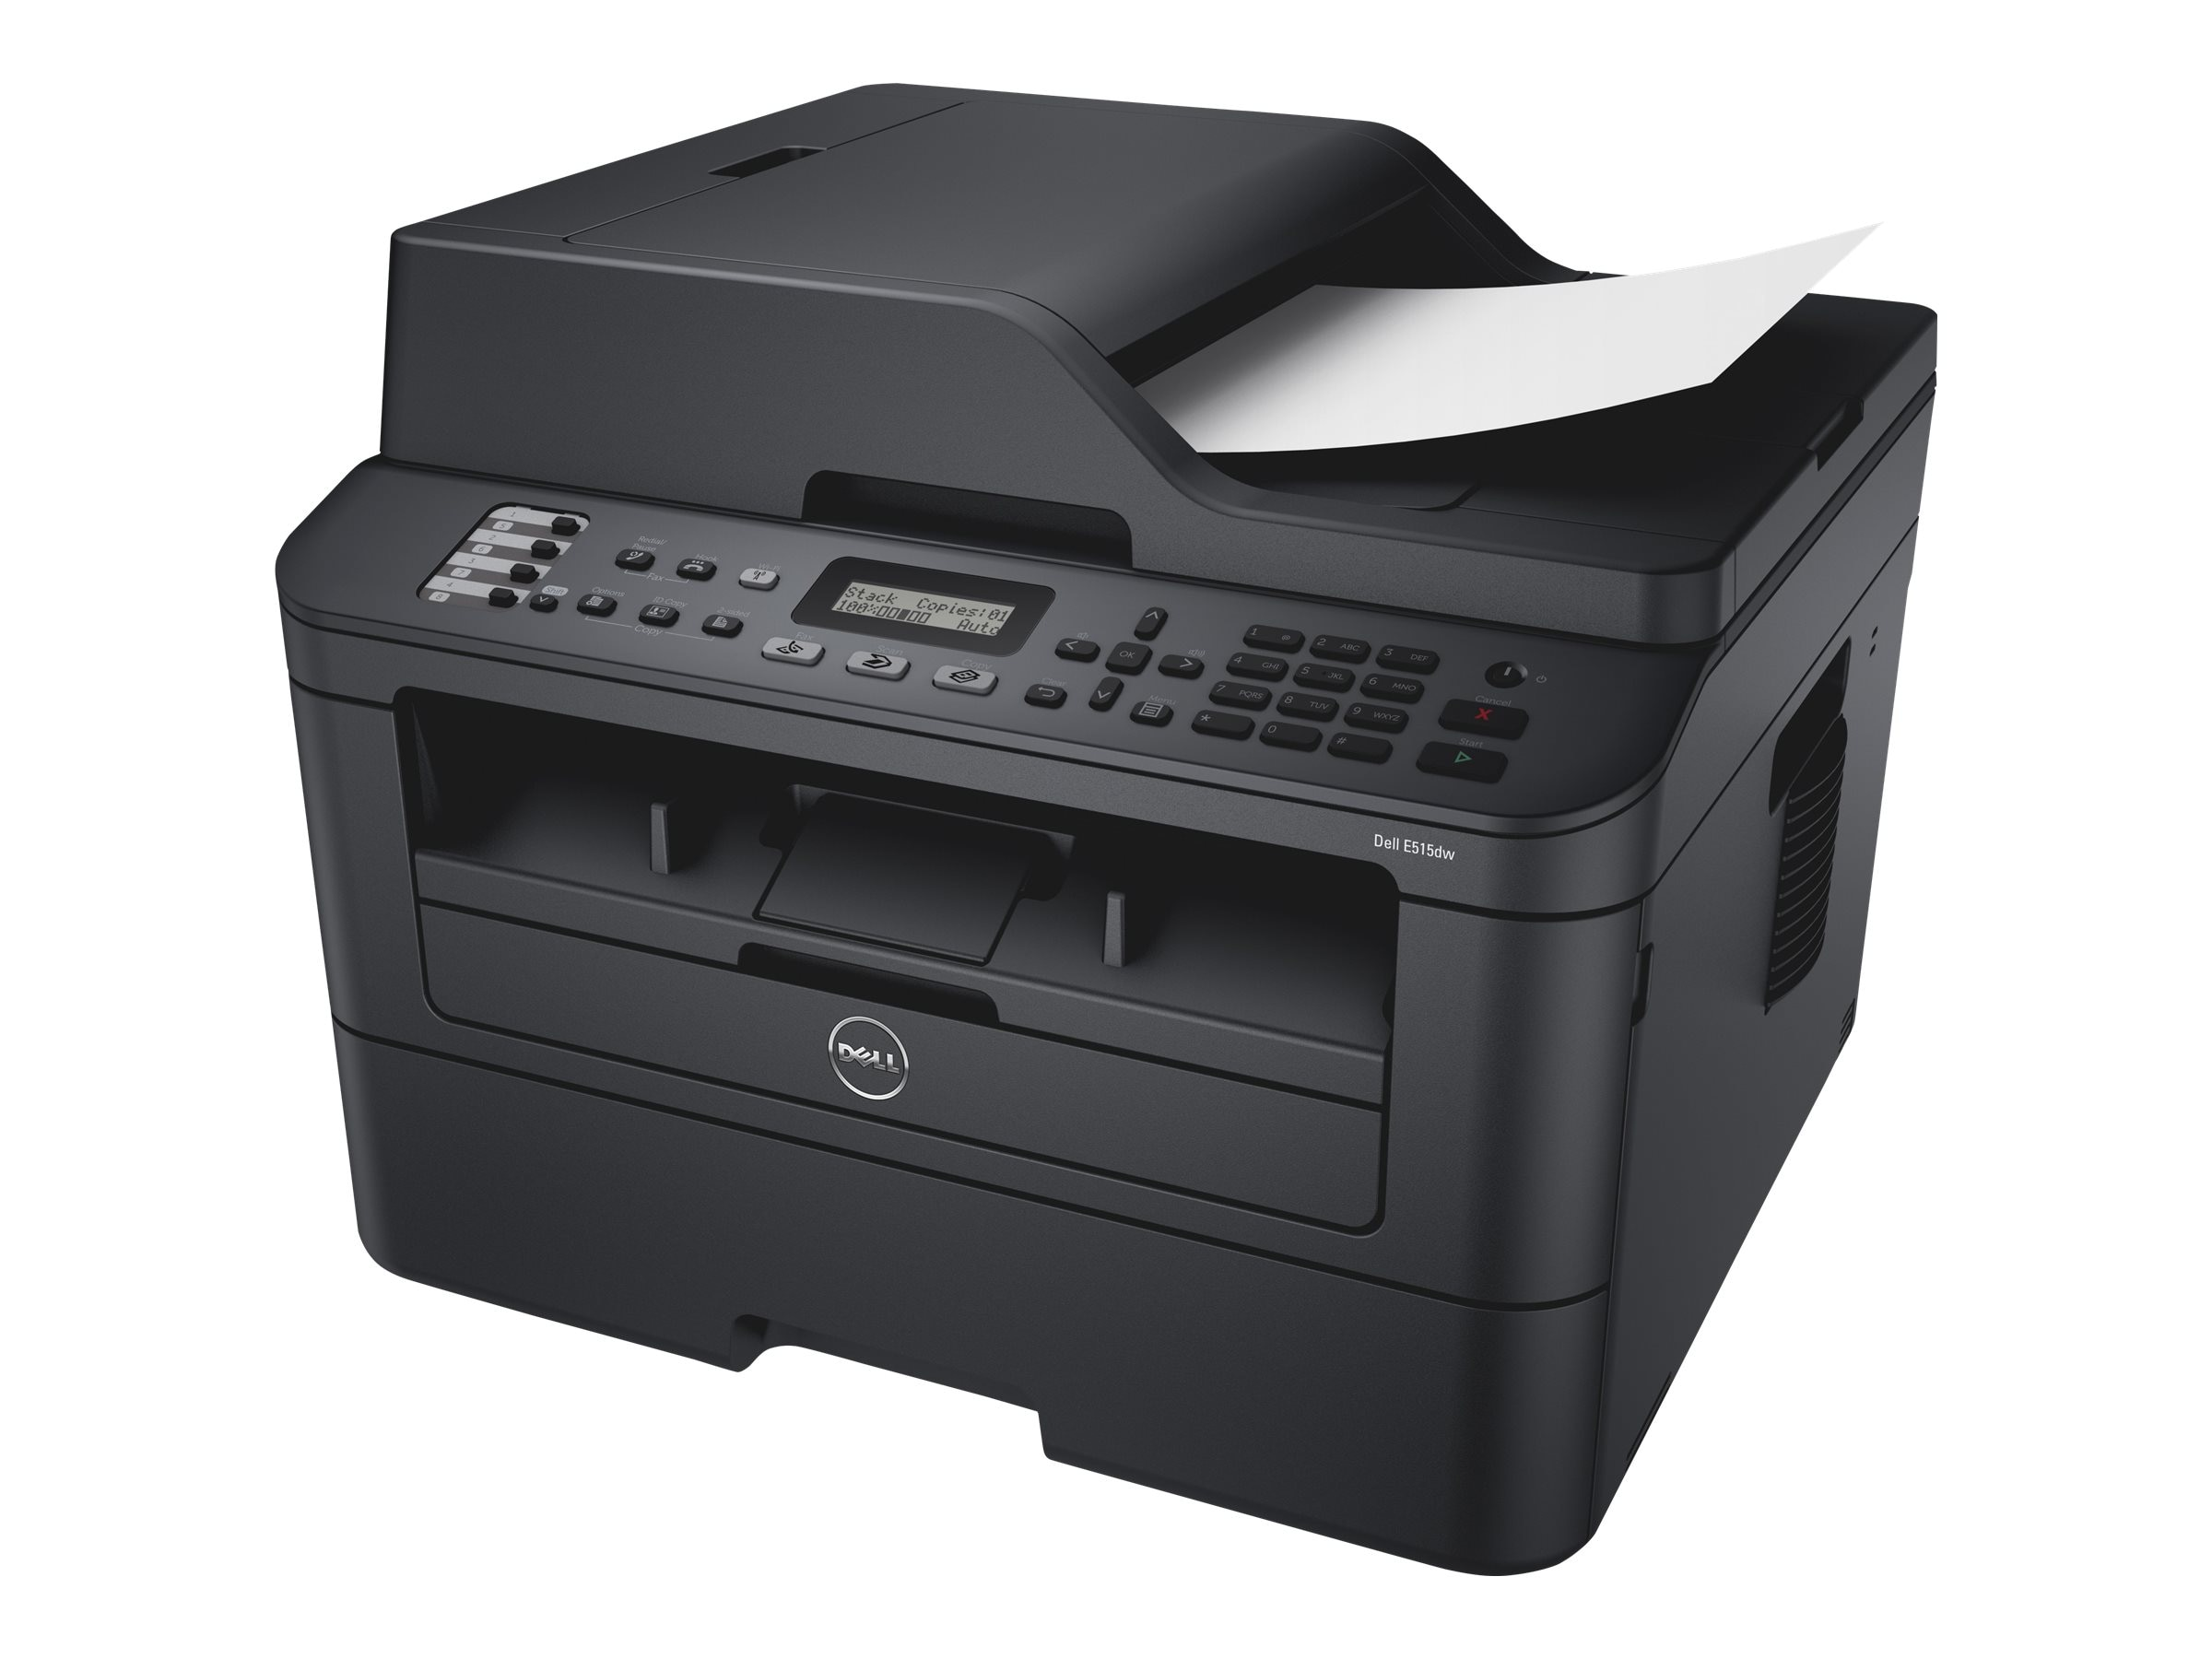 Dell E515dw Black & White Laser Multifunction Printer (210-AEHK), PKGT4, 22247469, MultiFunction - Laser (monochrome)